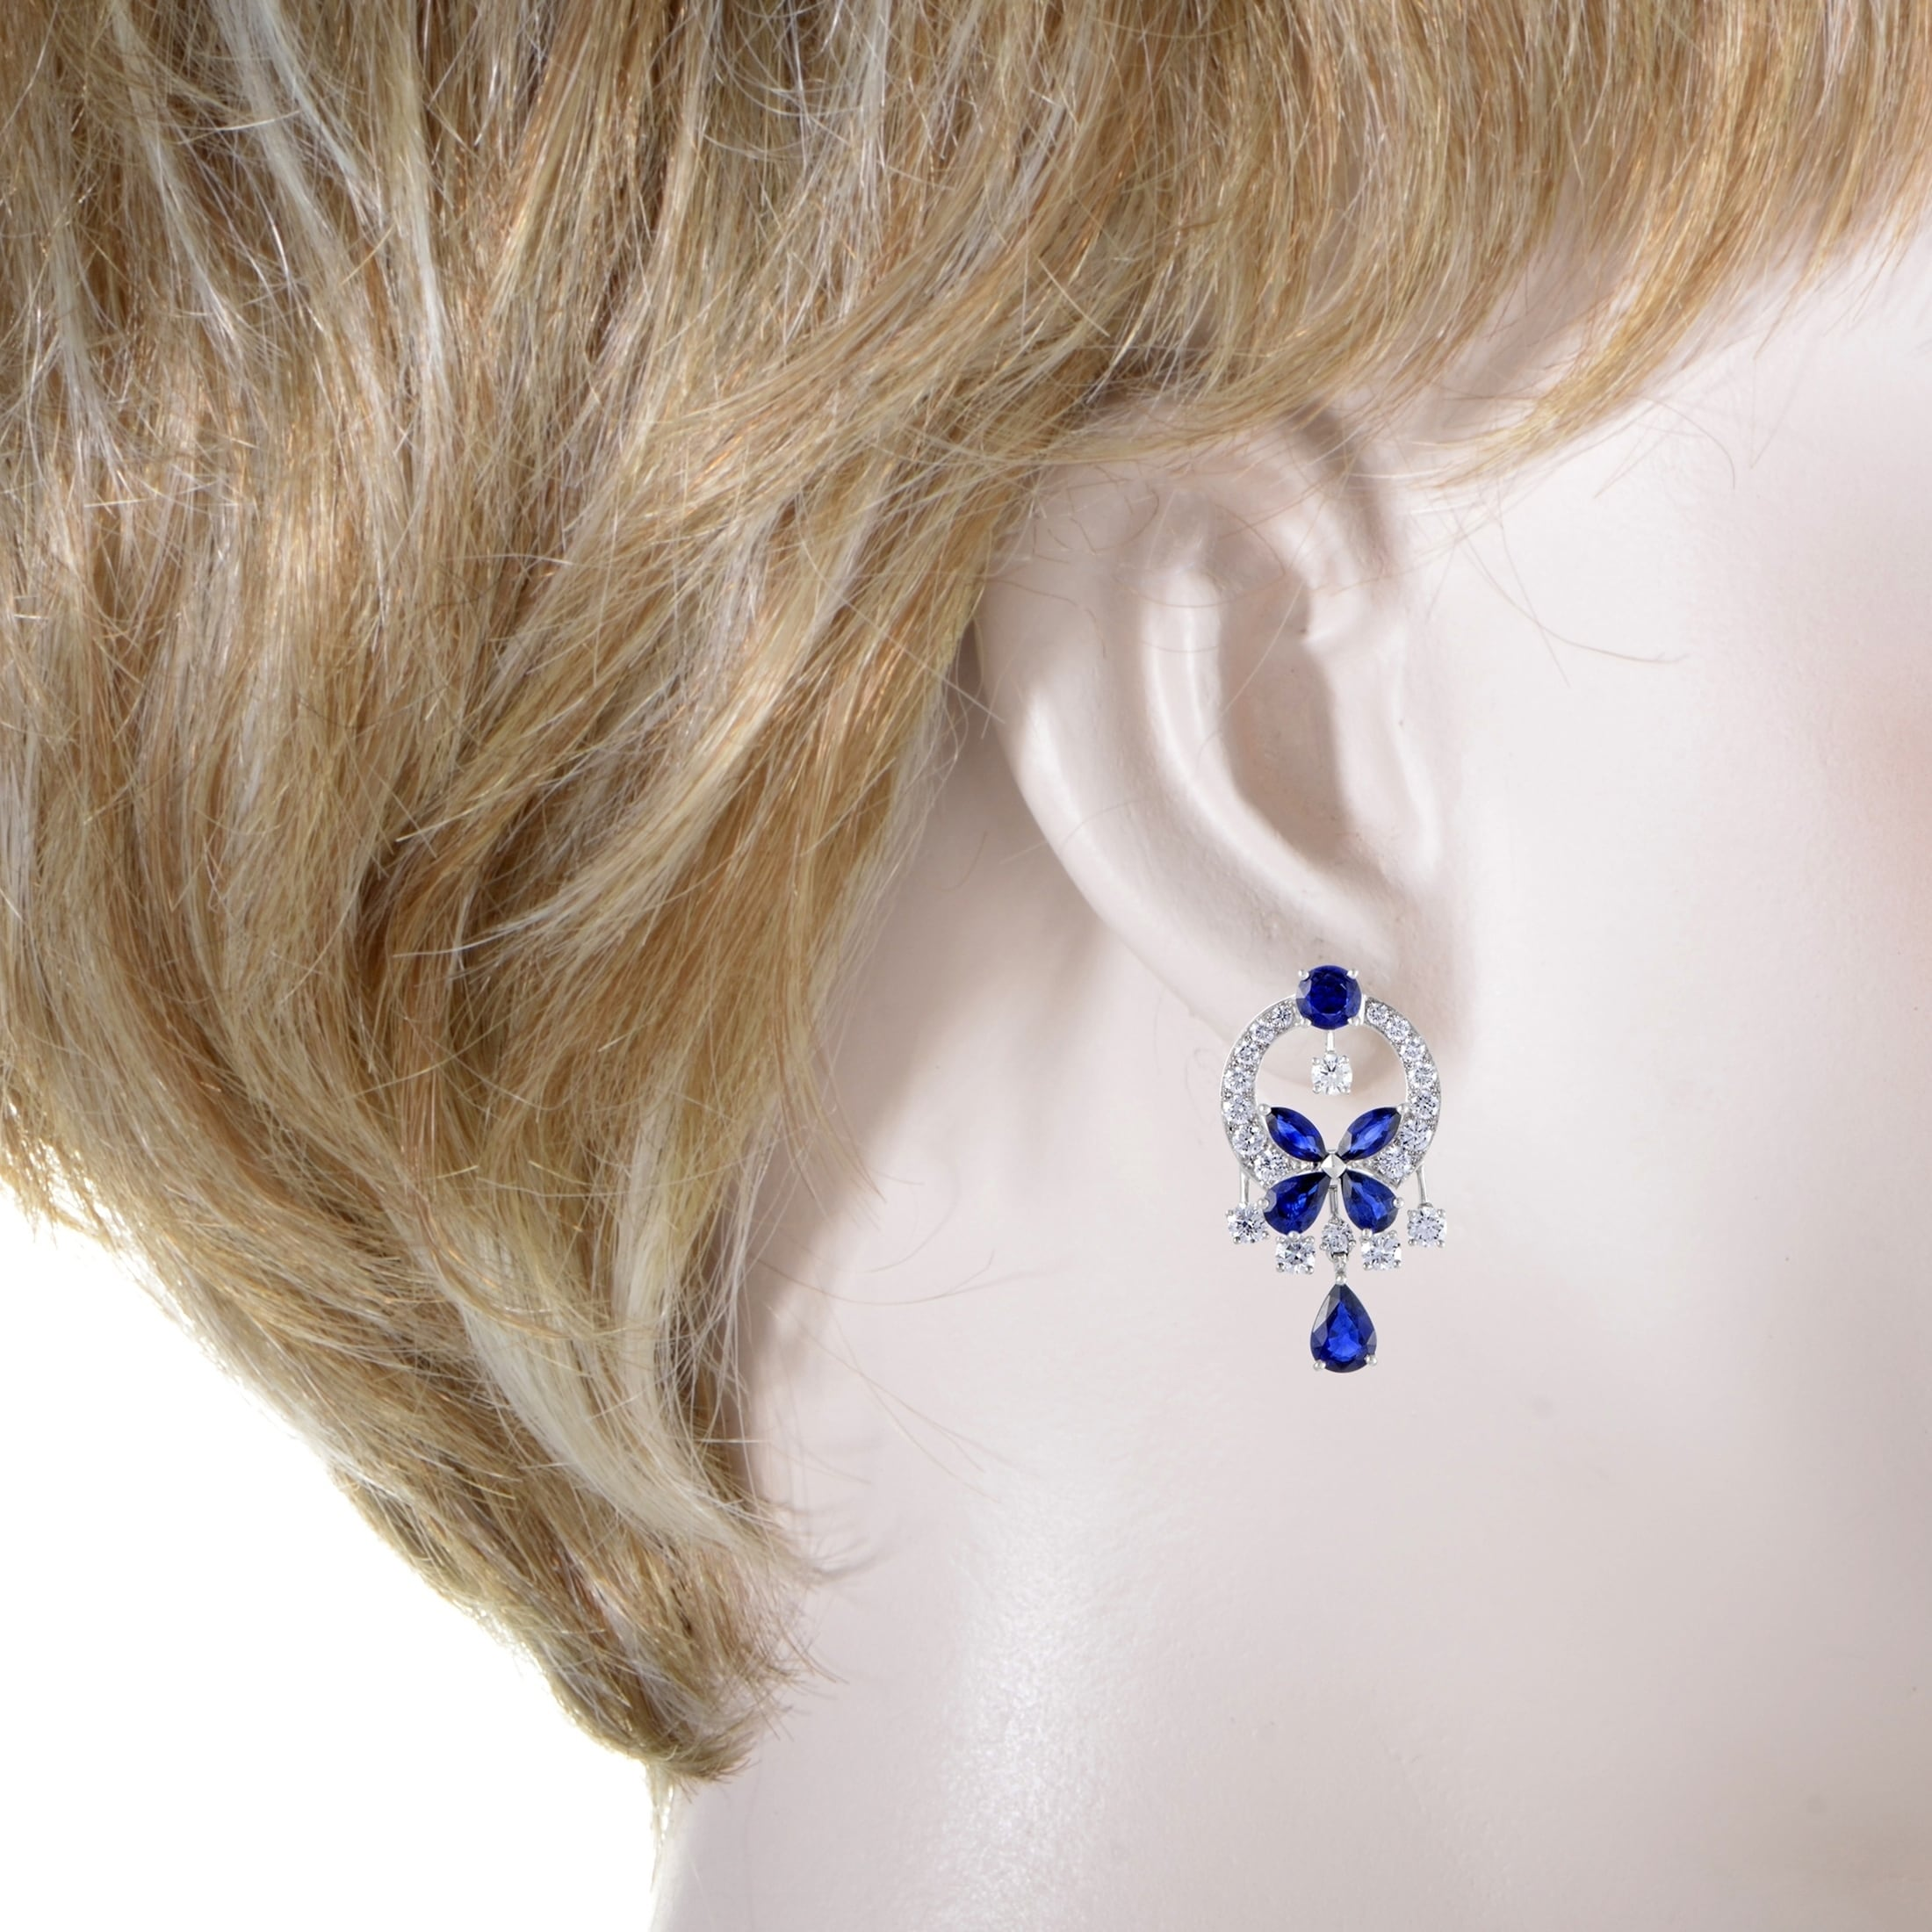 platinum designed and lot webb lg with estee diamonds lauder by earrings sapphires david detail pearls owned